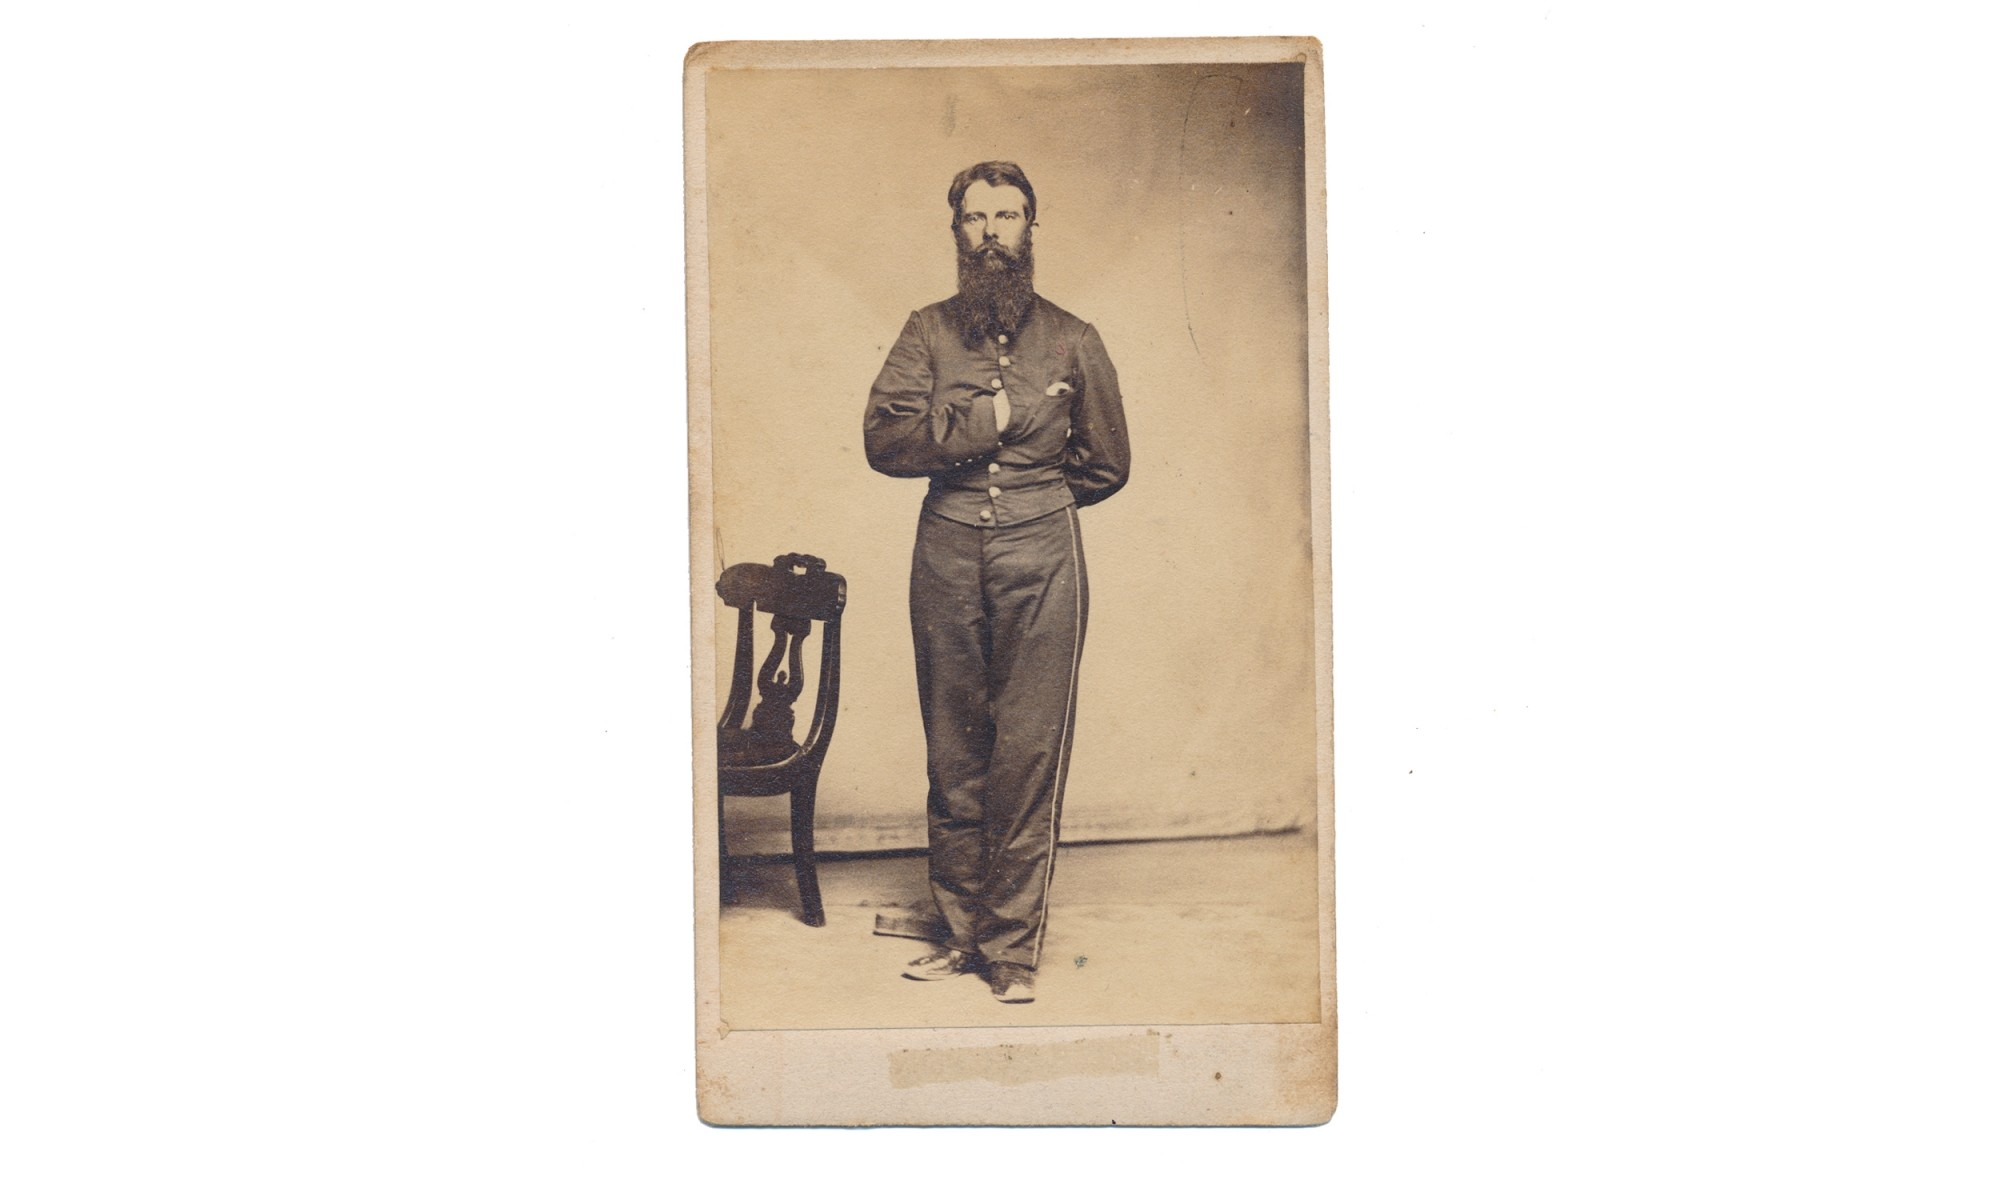 FULL STANDING CDV OF A 3RD PENNSYLVANIA CAVALRYMAN